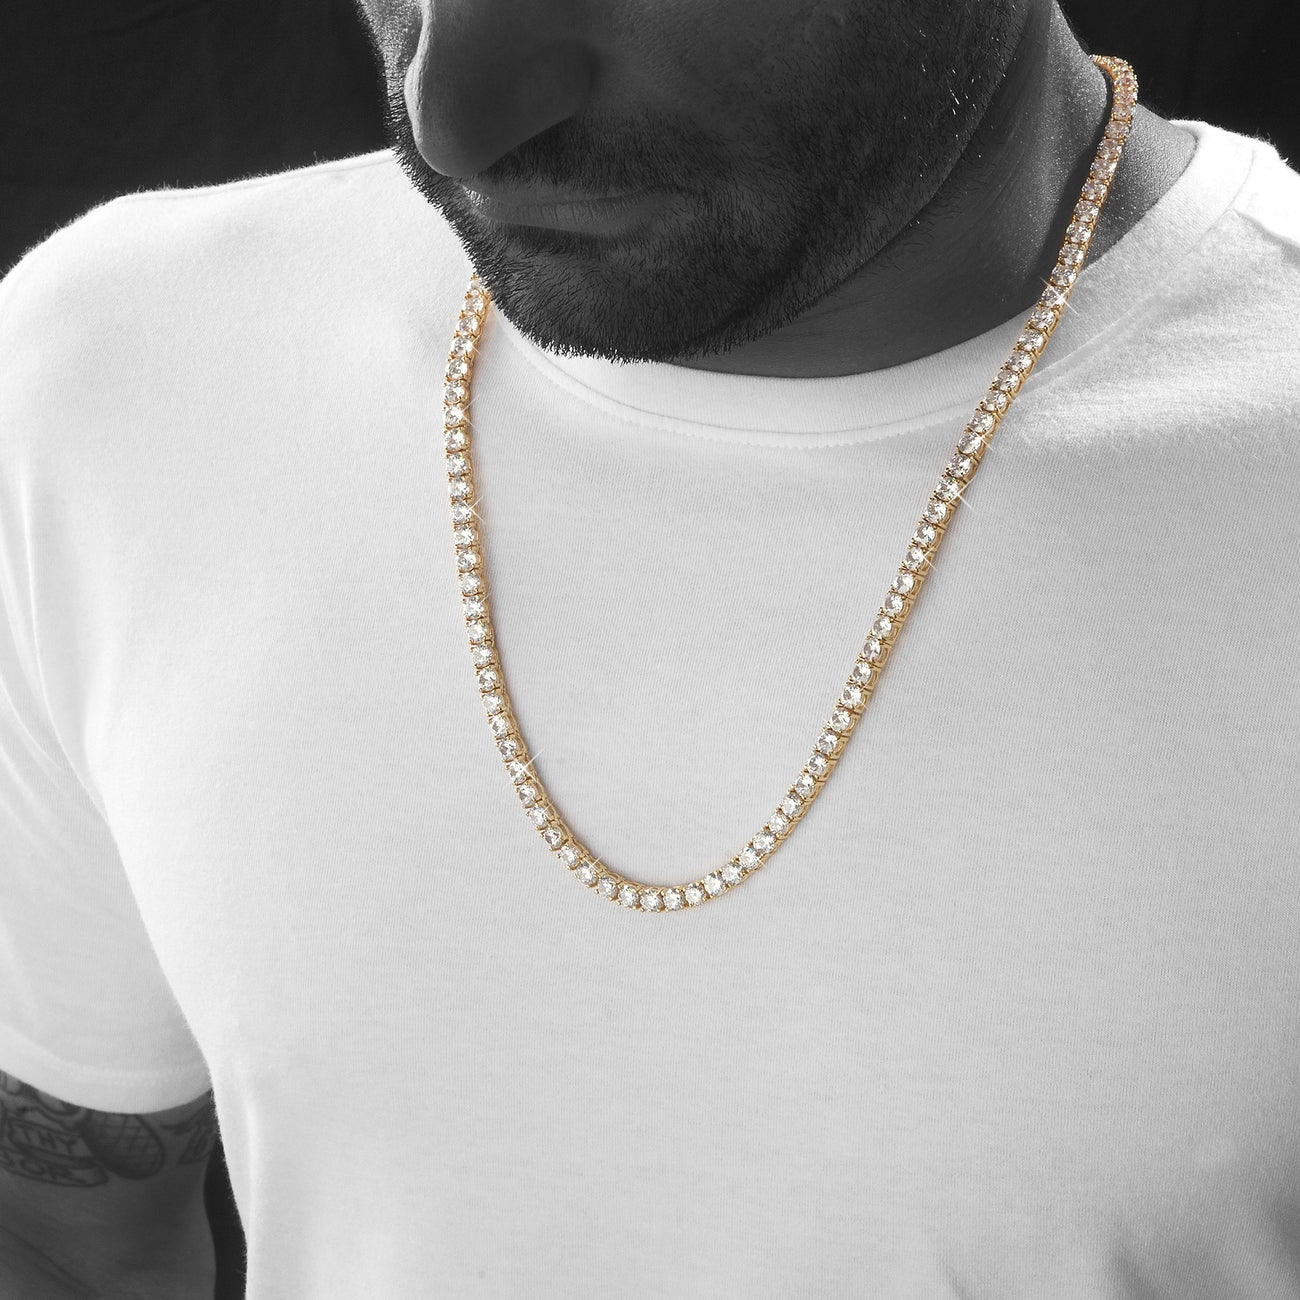 Chains - Sterling Silver 5mm Tennis Chain In Gold